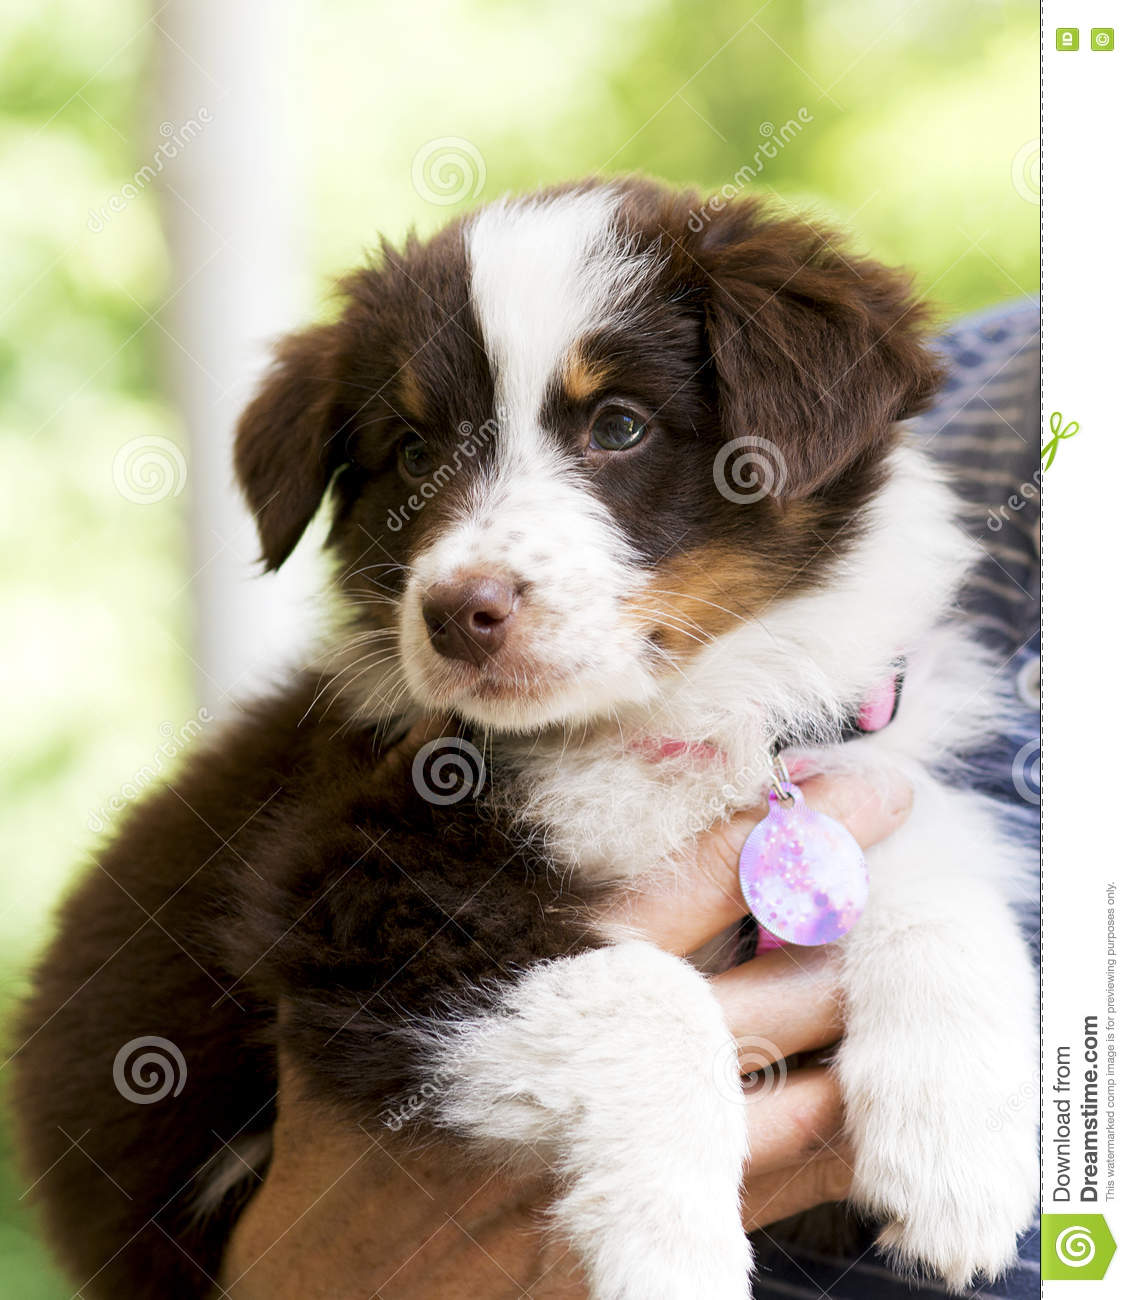 Australian Shepherd Puppy Stock Photo Image Of Blue 73657212